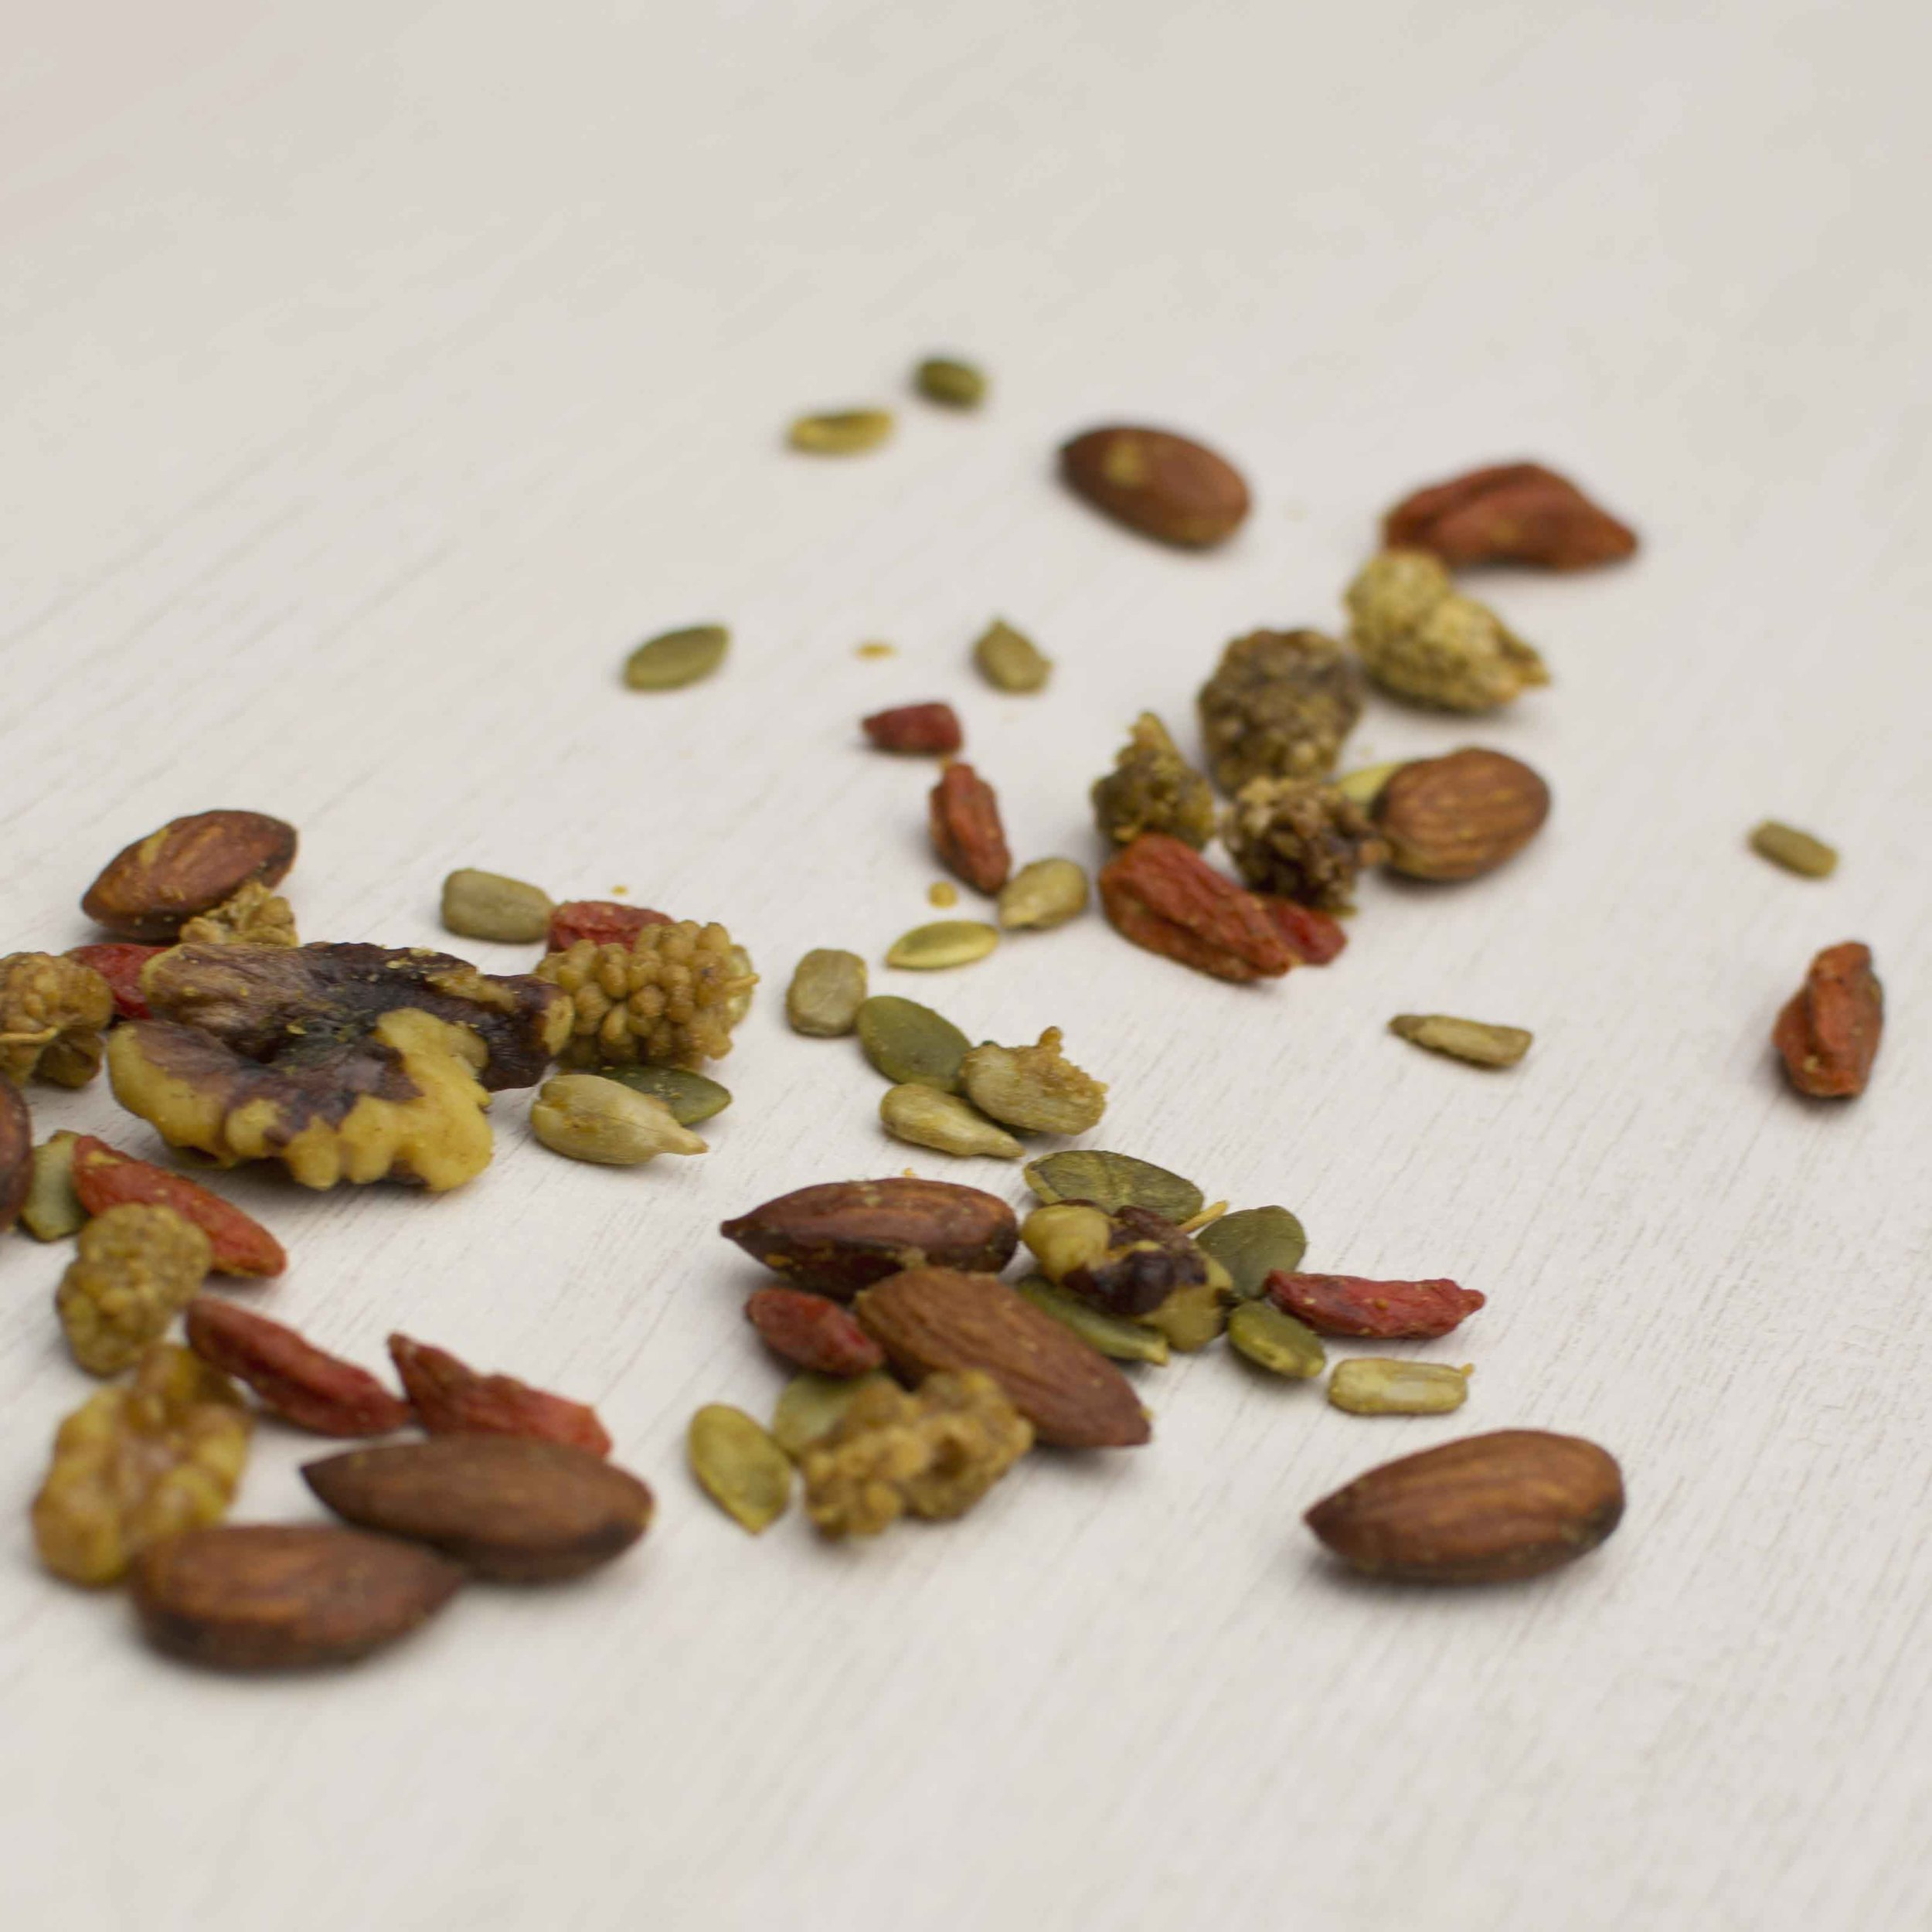 """Everyone got small to-go samples of the """"Trippy Trailmix"""" recipe from the cookbook, infused with cannabis of course. Healthy, delicious, and cannabis infused!It was so delicious that I had to keep reminding myself that it was infused and to not eat too much at once."""